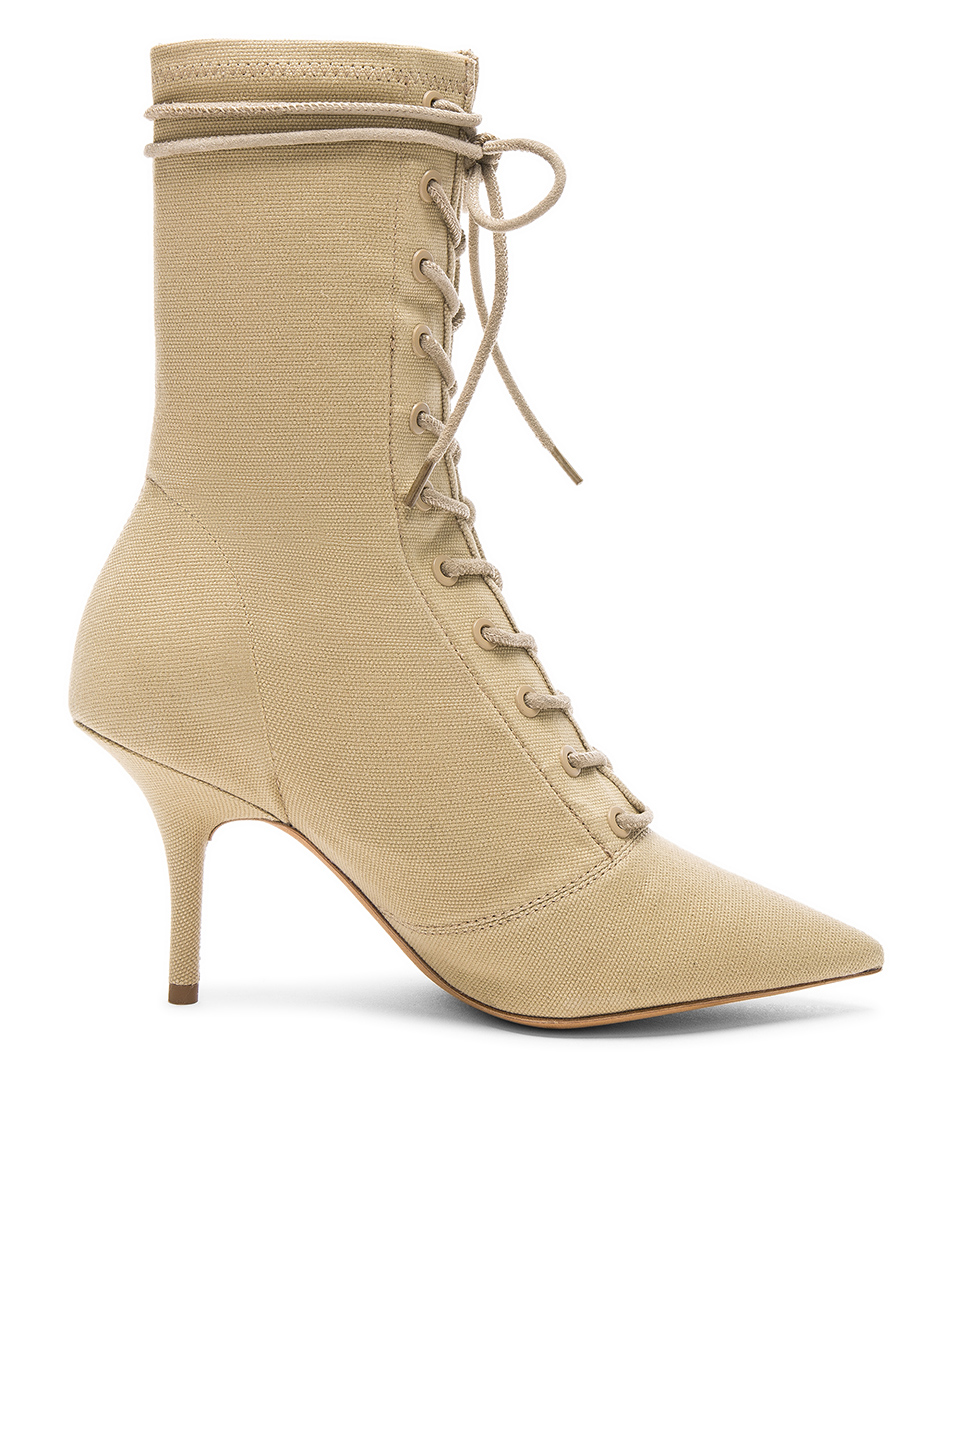 aaea6d936 Buy Original YEEZY Season 6 Stretch Canvas Lace Up Ankle Boot at ...